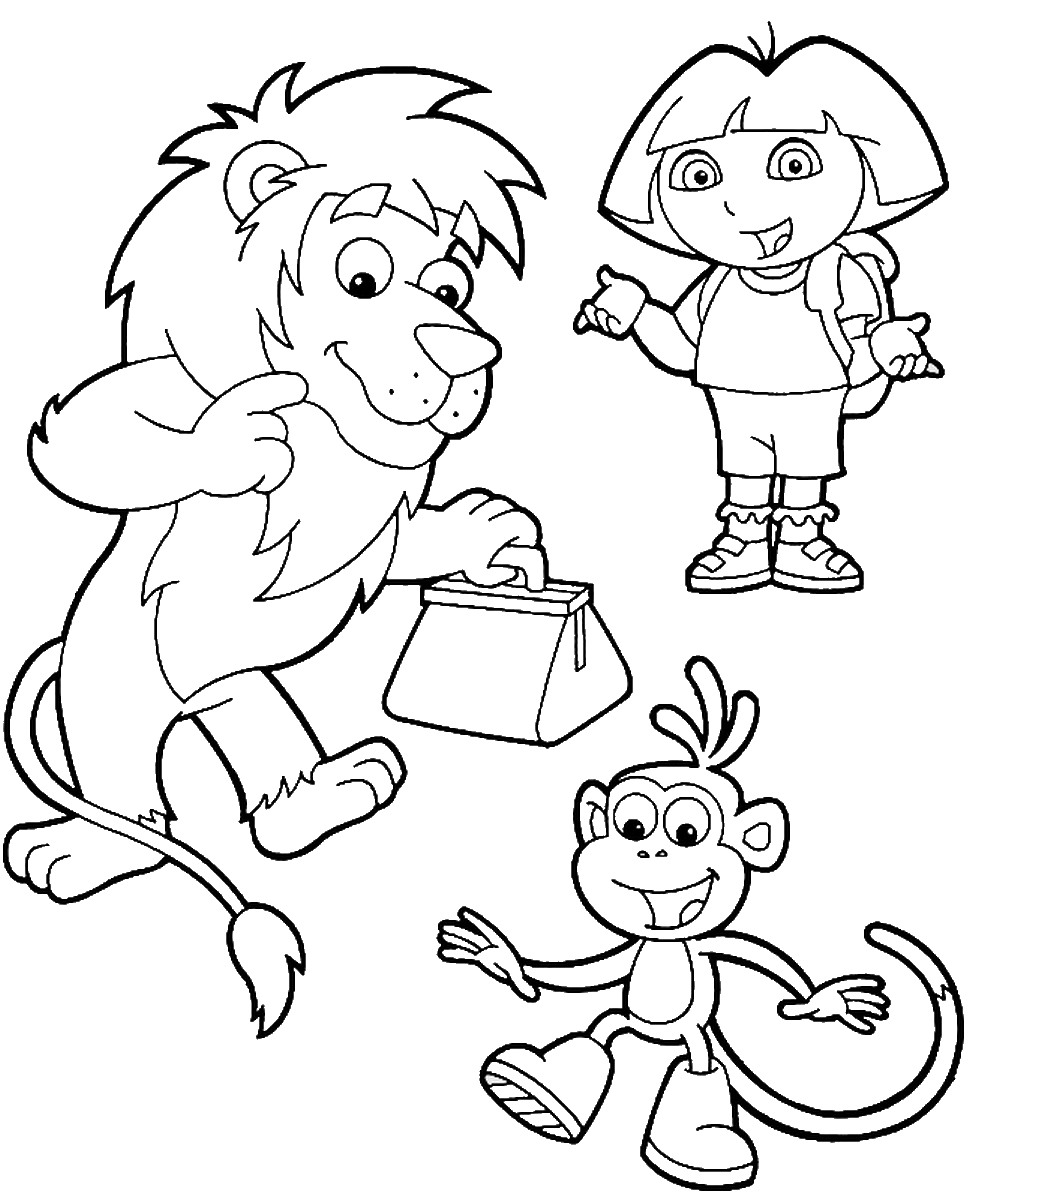 printable pictures of dora the explorer free printable dora the explorer coloring pages for kids explorer printable of the dora pictures